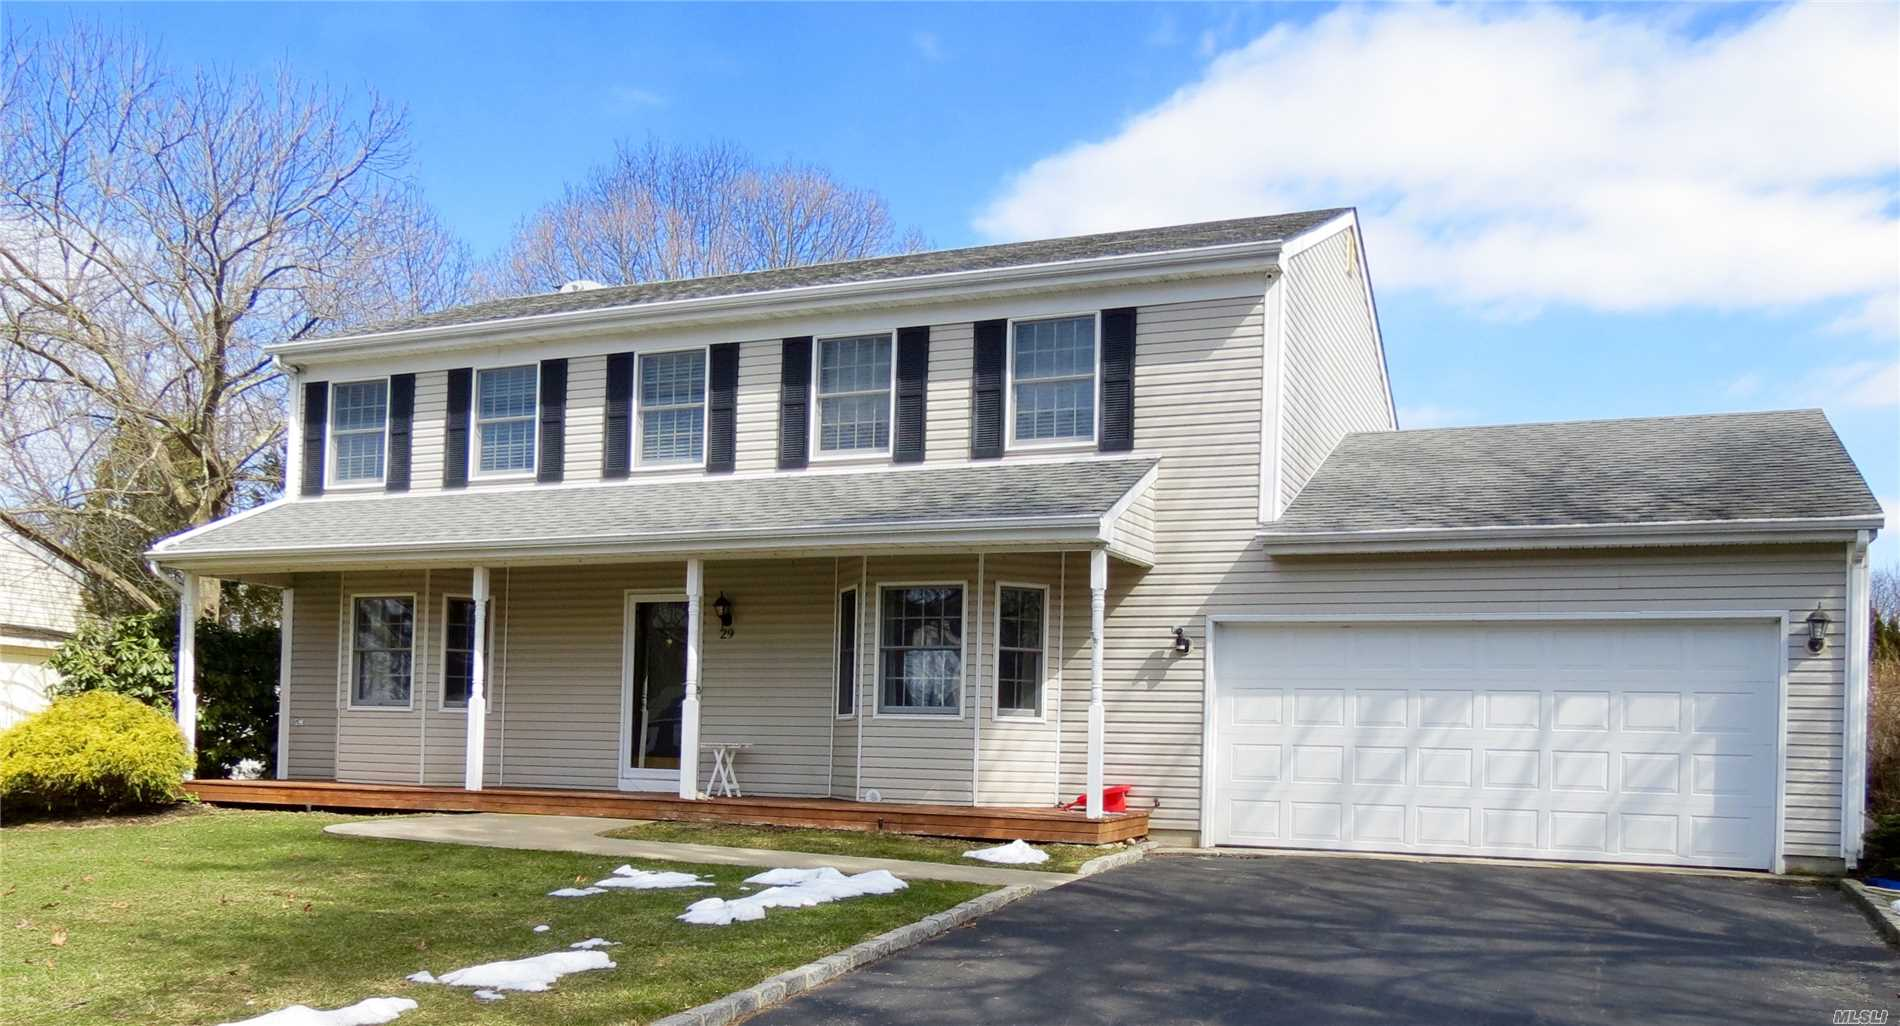 Beautiful Spacious Colonial! Four Bedrooms, Eik, Frml Dr, Fmly Rm W/ Fpl, Lrm W/ Pellet Stove, 2 1/2 Bath, Oak Floors Throughout! Security System! Professionally Landscaped W/Fenced In Backyard W/ Patio Pavers, Inground Pool 6' No Diving Board & Separate Hot Tub! Shoreham Wading River Schools! Desirable Neighborhood! Move In Condition! Conveniently Located To Everything!